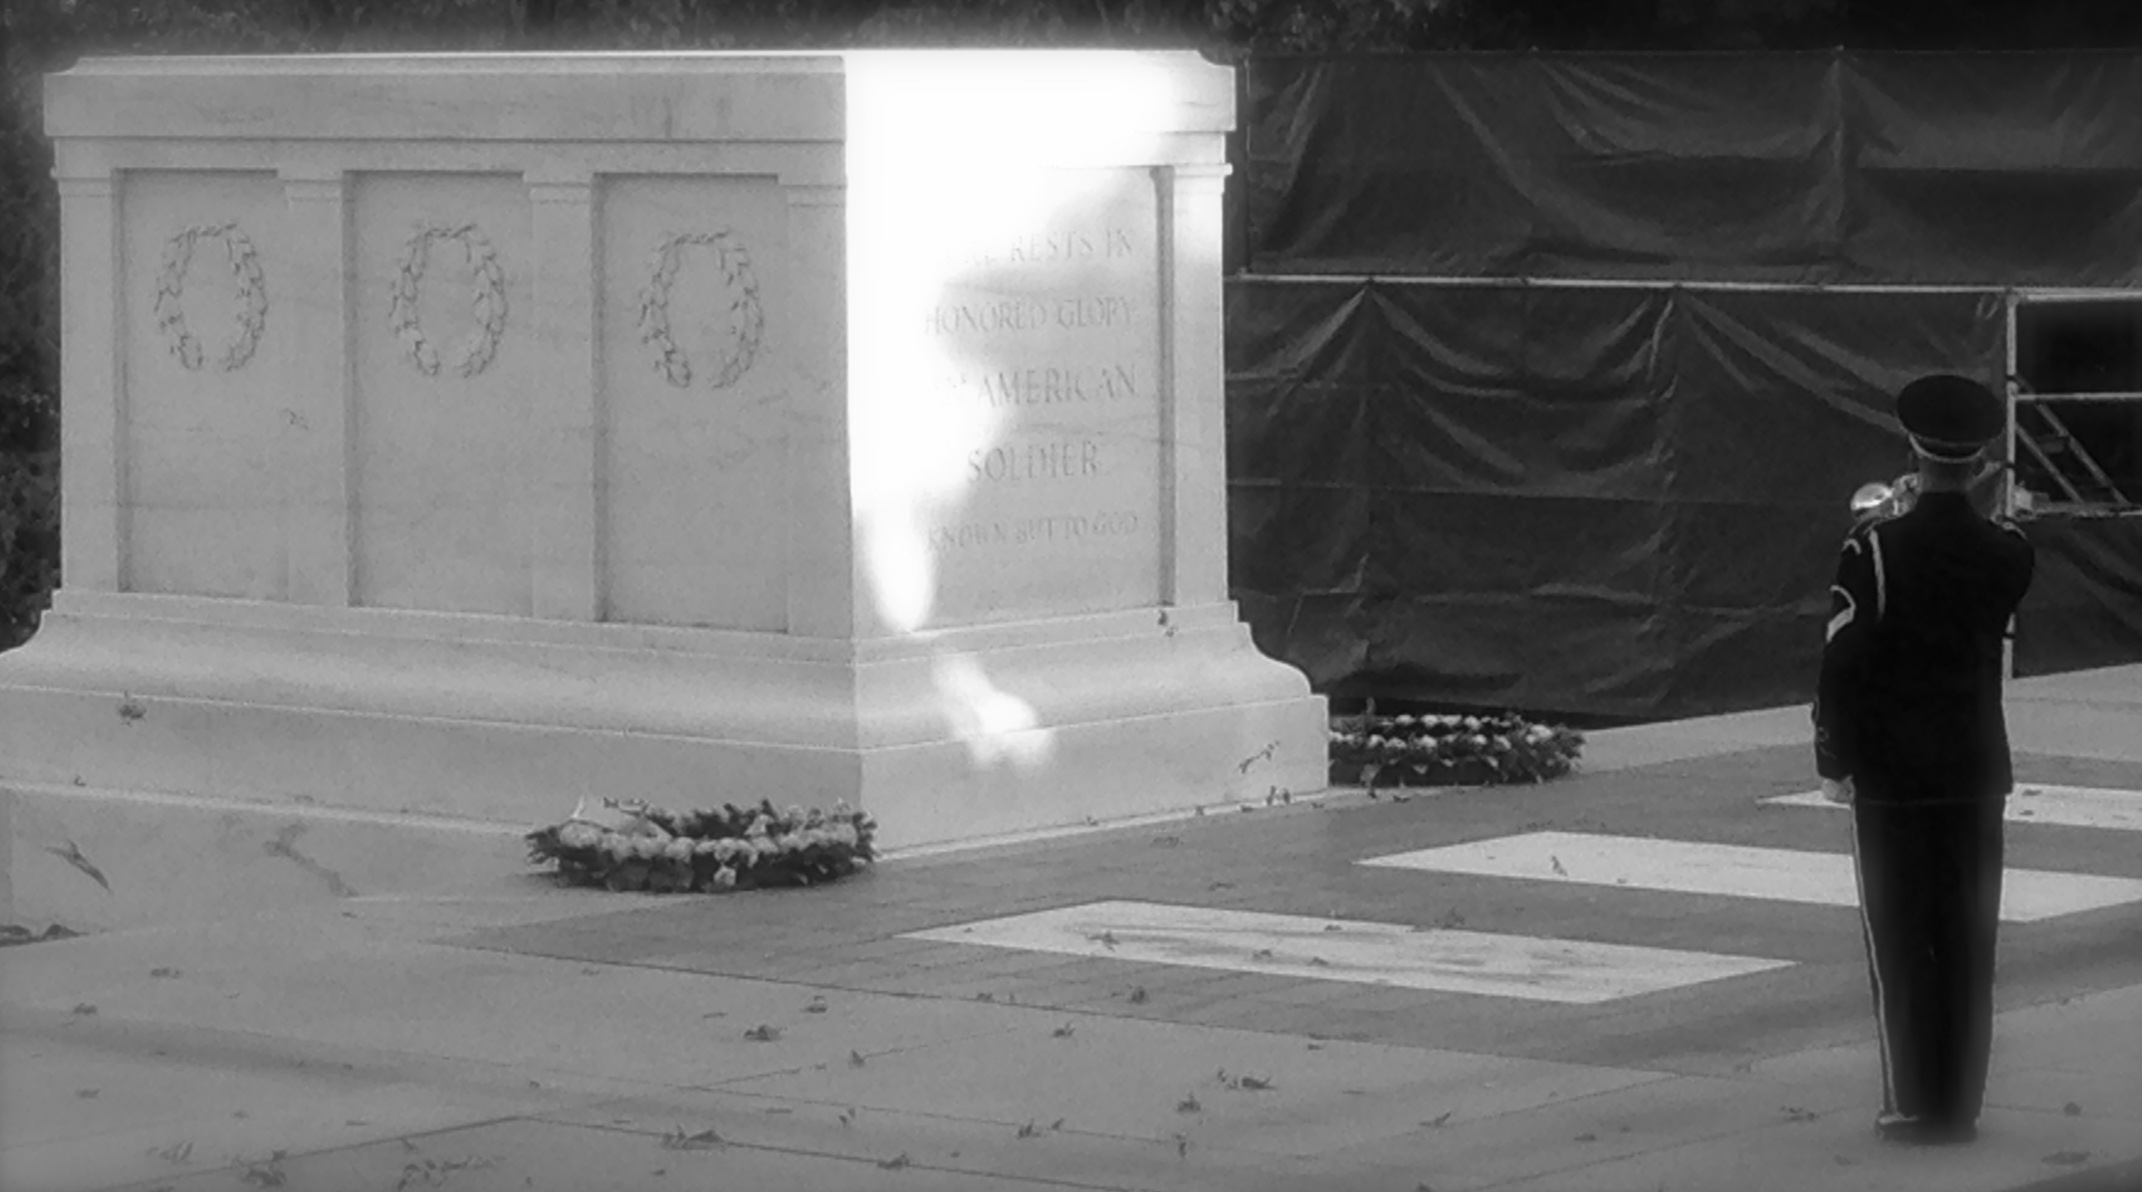 Solitary soldier performing Taps at the Tomb of the Unknown Soldier at Arlington National Cemetery, Washington DC